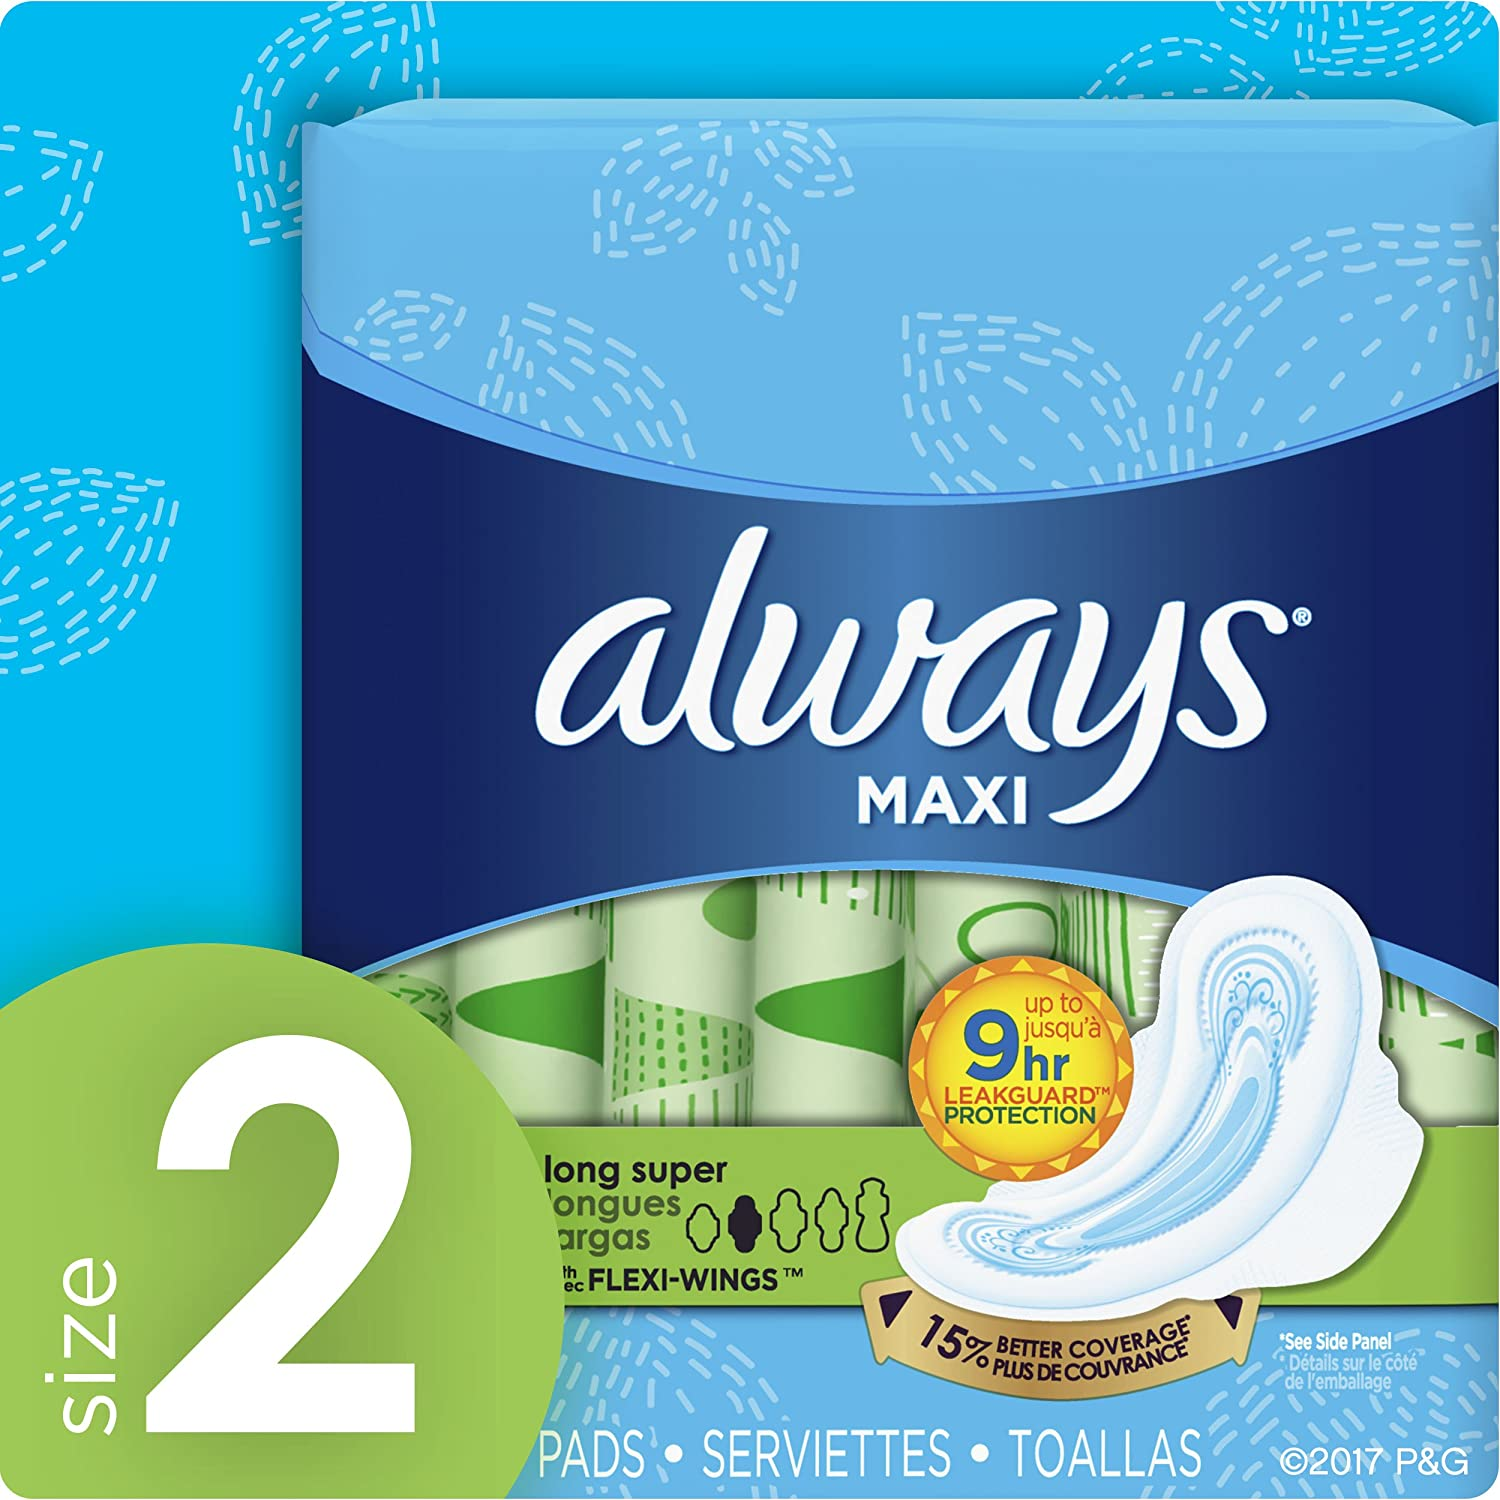 Amazon.com: Always Maxi Size 2 Feminine Pads with Wings, Super Absorbency, Unscented, 42 Count (Packaging May Vary): Prime Pantry